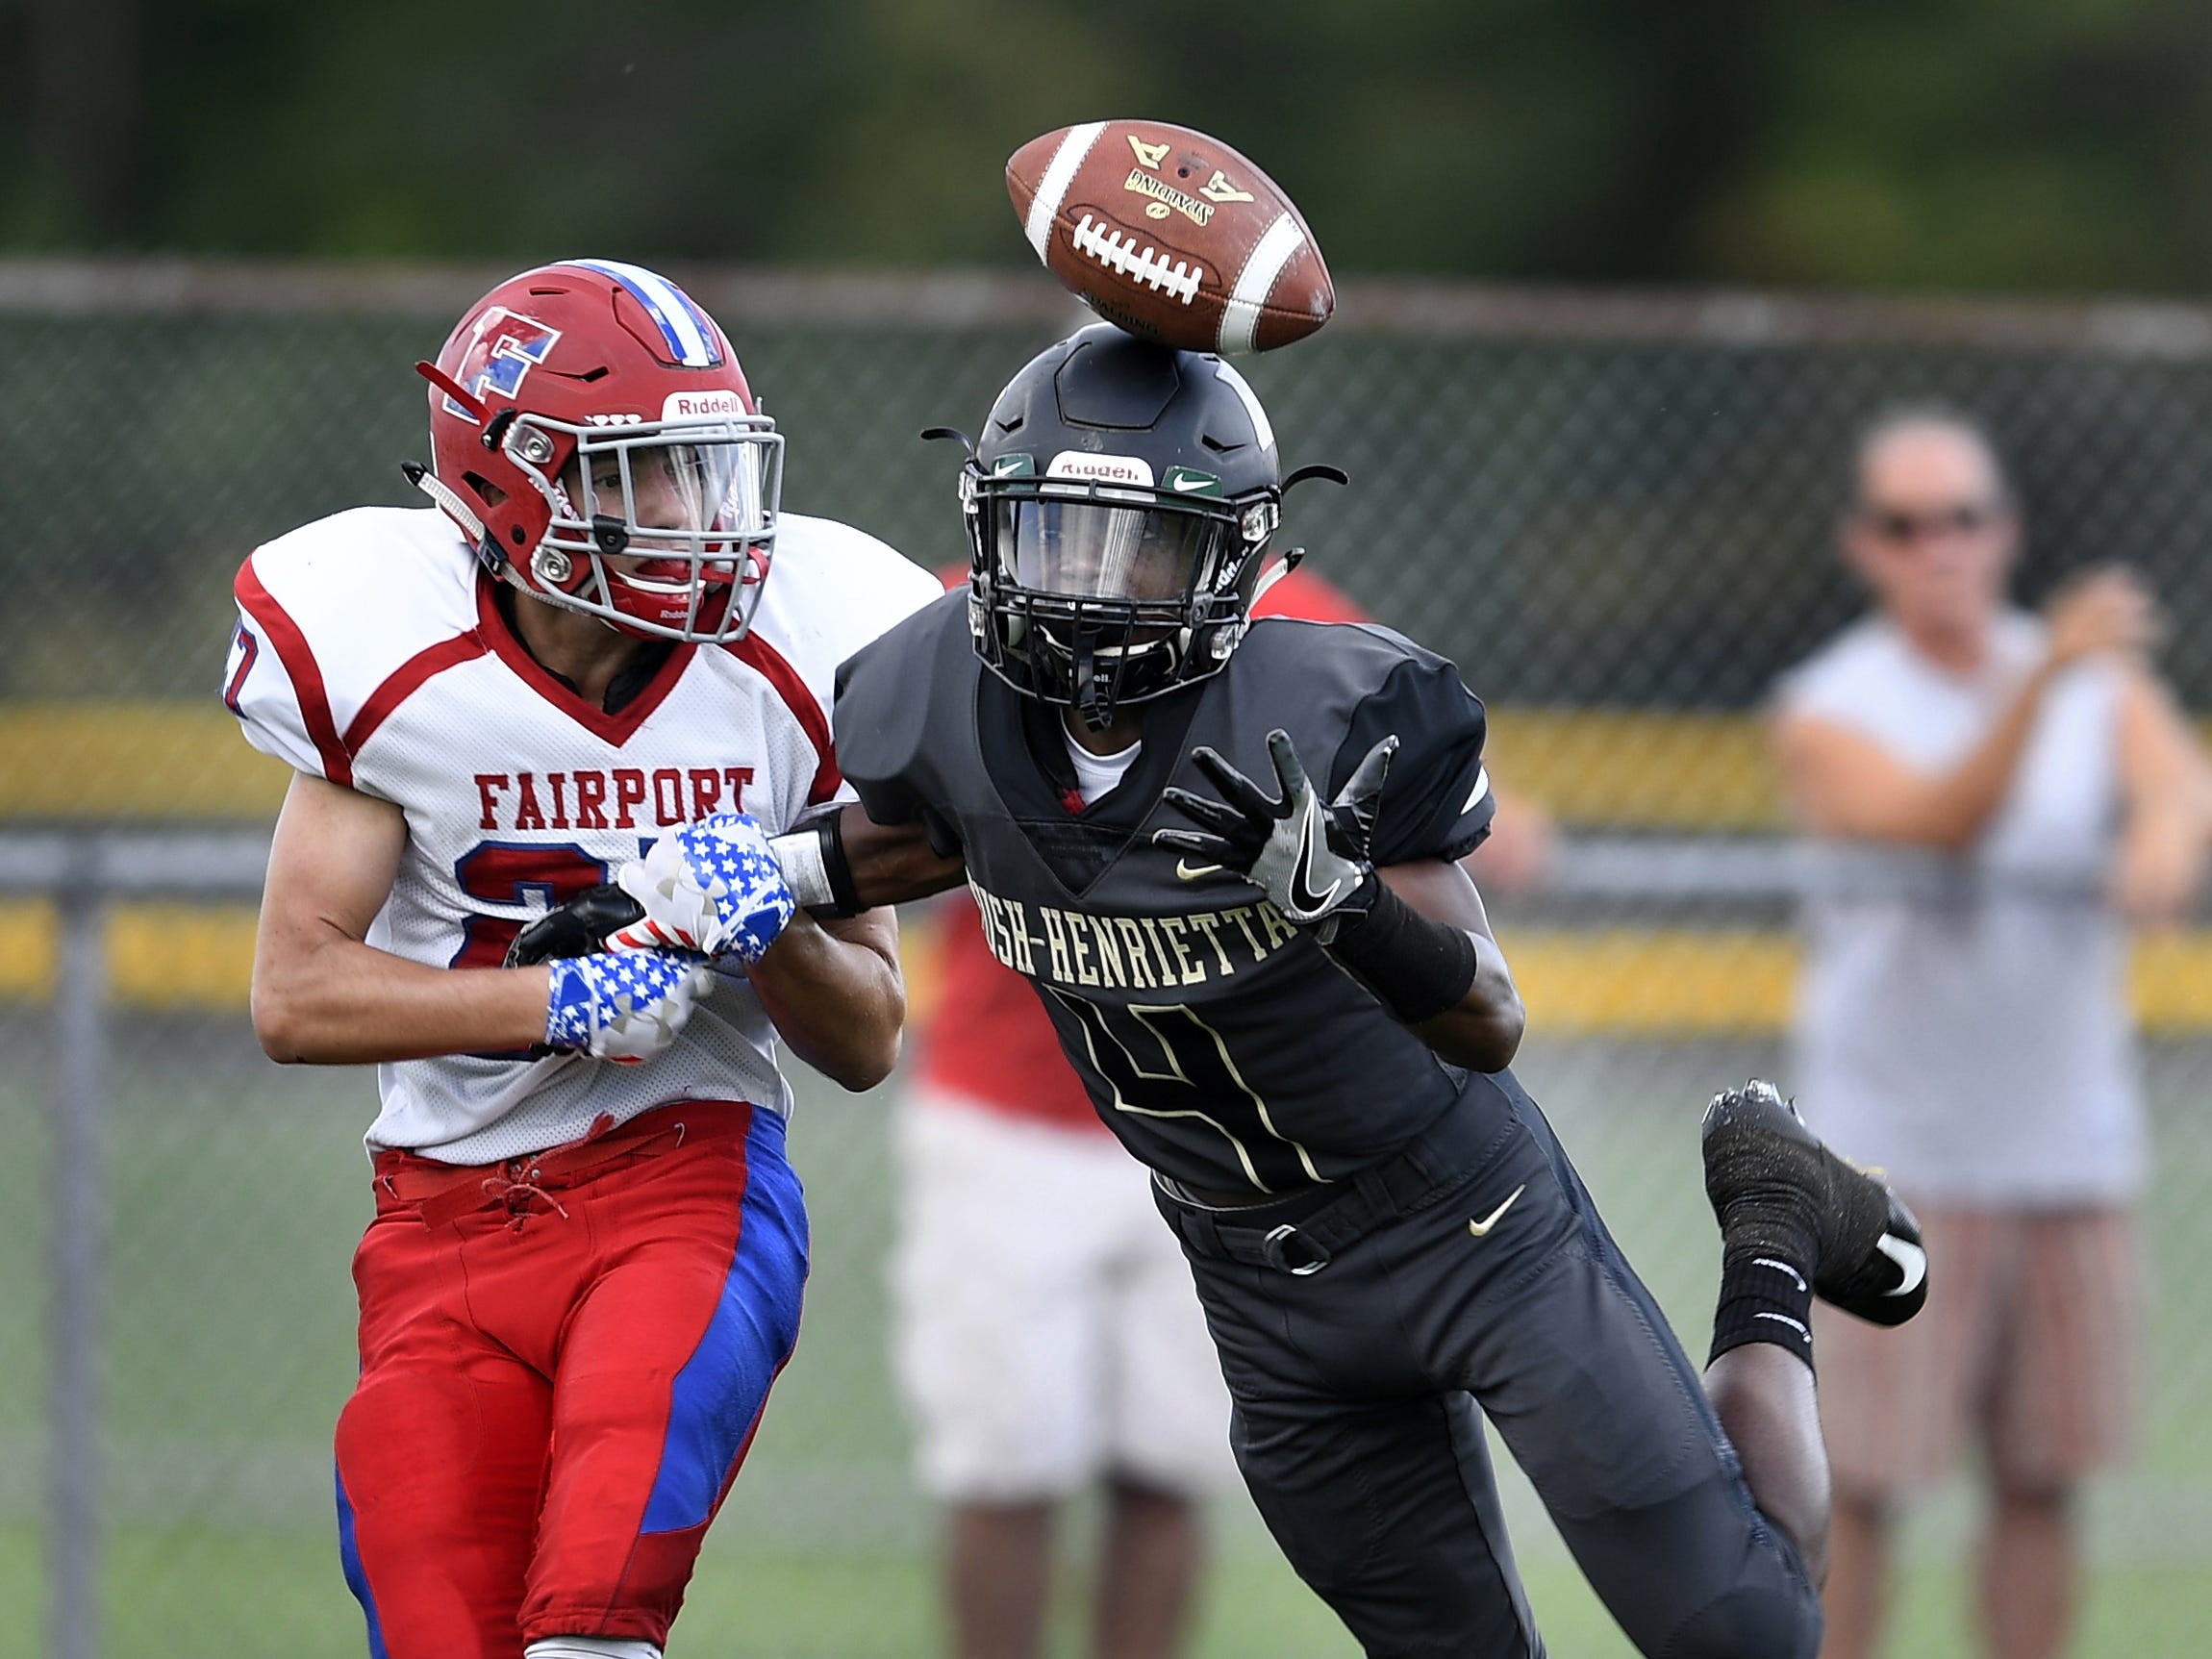 Rush-Henrietta's Mark Rogers, right, can't quite haul in this pass while defended by Fairport's Mason Gasbarre on Saturday, Sept. 15, 2018.